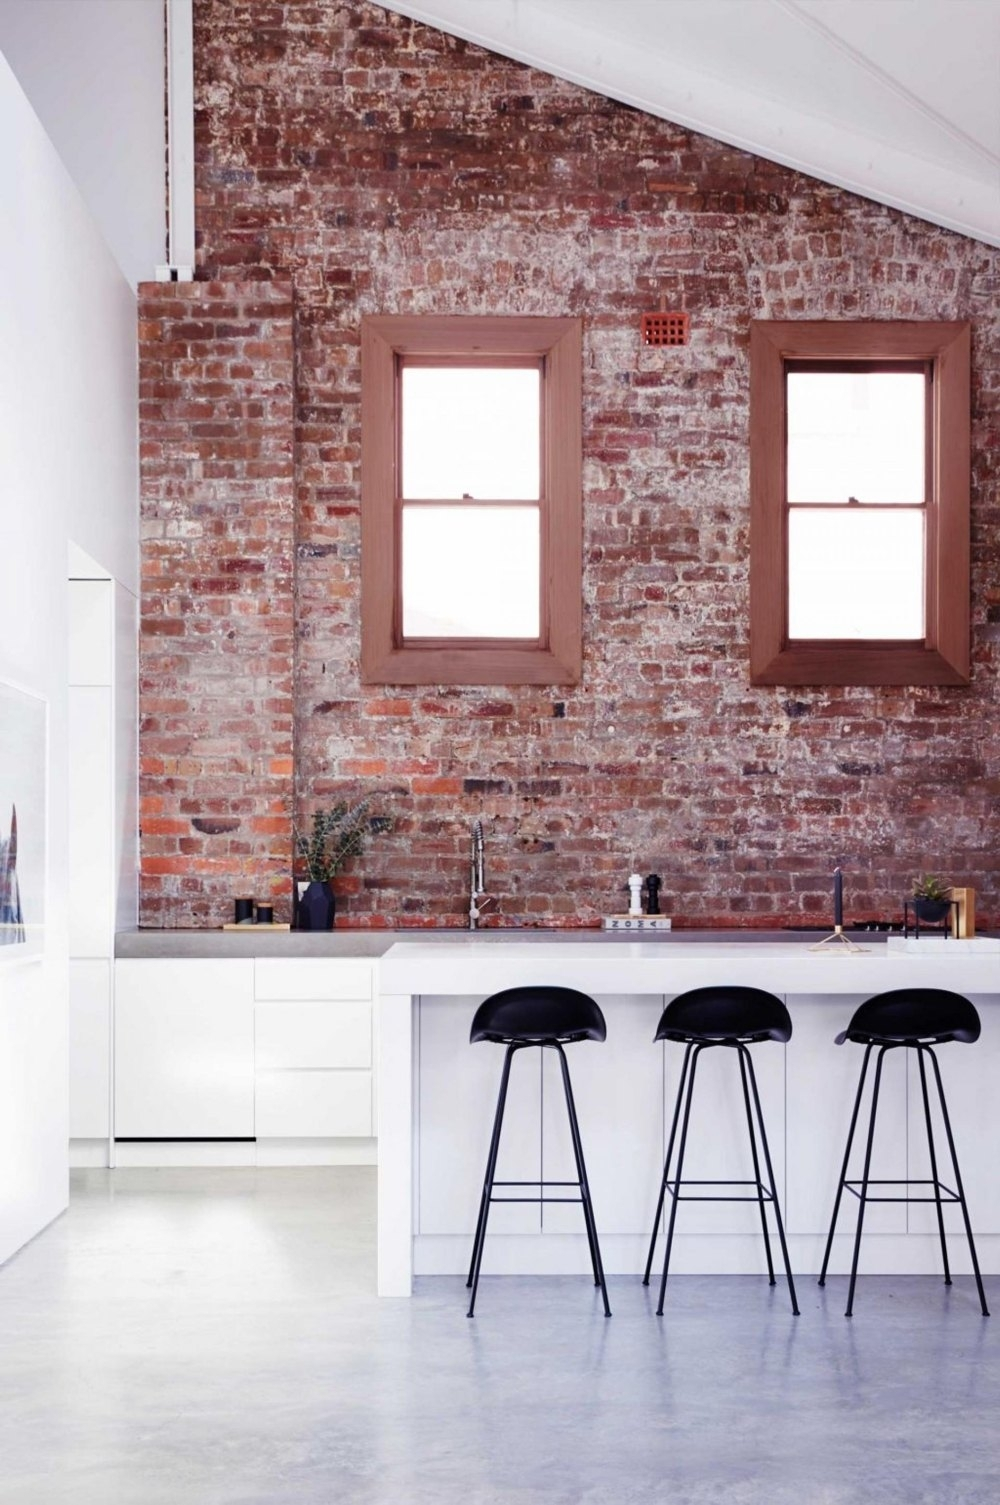 19 Stunning Interior Brick Wall Ideas | Decorate With Exposed With Most Recent Brick Wall Accents (View 2 of 15)